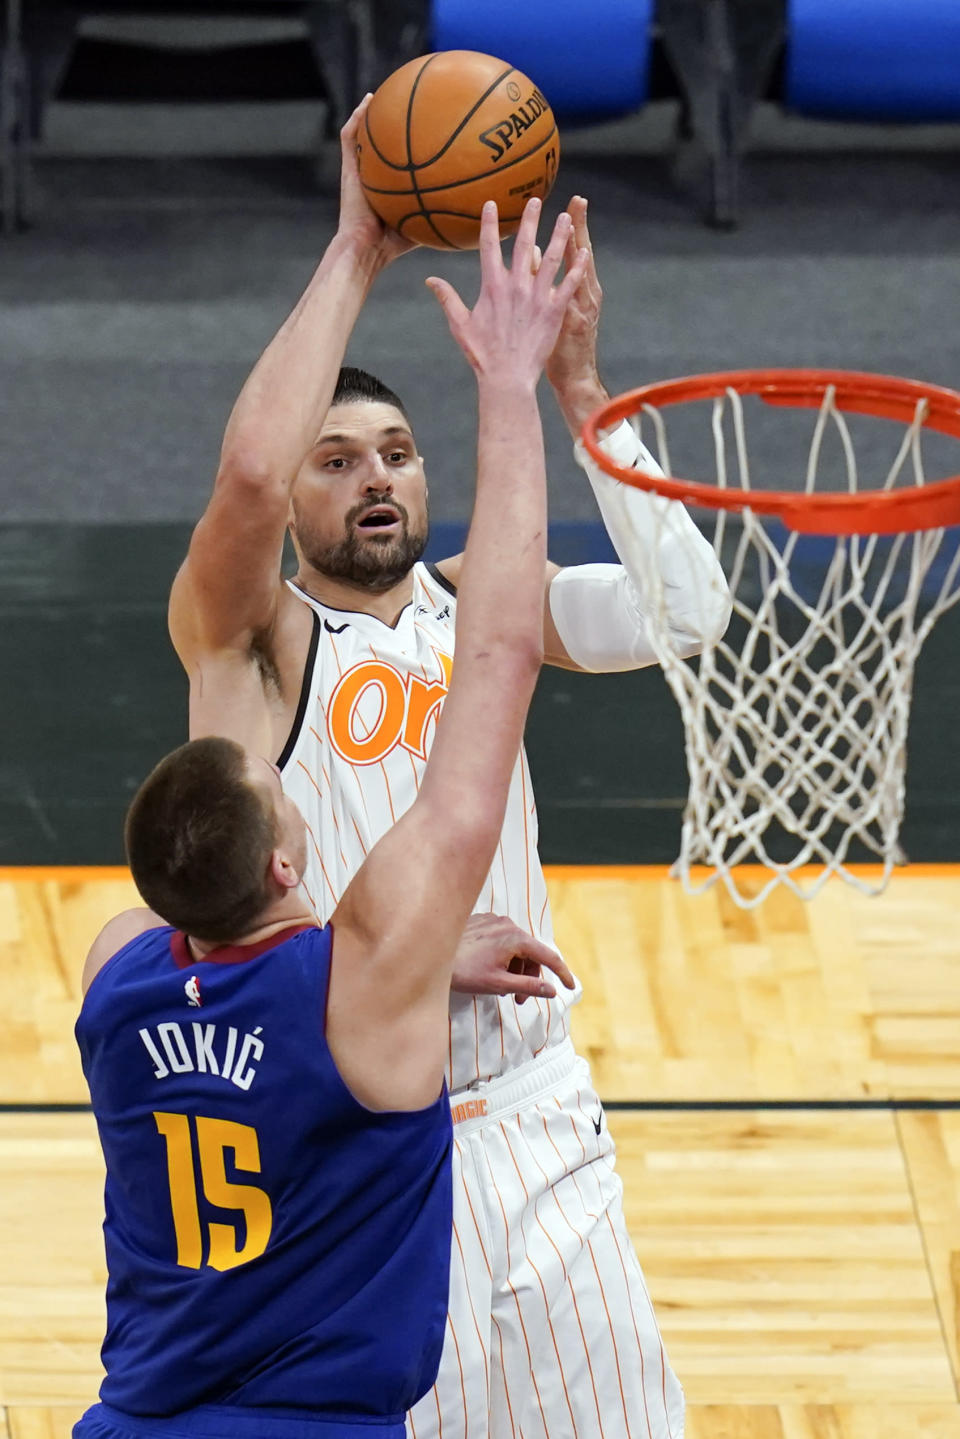 Orlando Magic center Nikola Vucevic, right, makes a shot over Denver Nuggets center Nikola Jokic (15) during the second half of an NBA basketball game, Tuesday, March 23, 2021, in Orlando, Fla. (AP Photo/John Raoux)